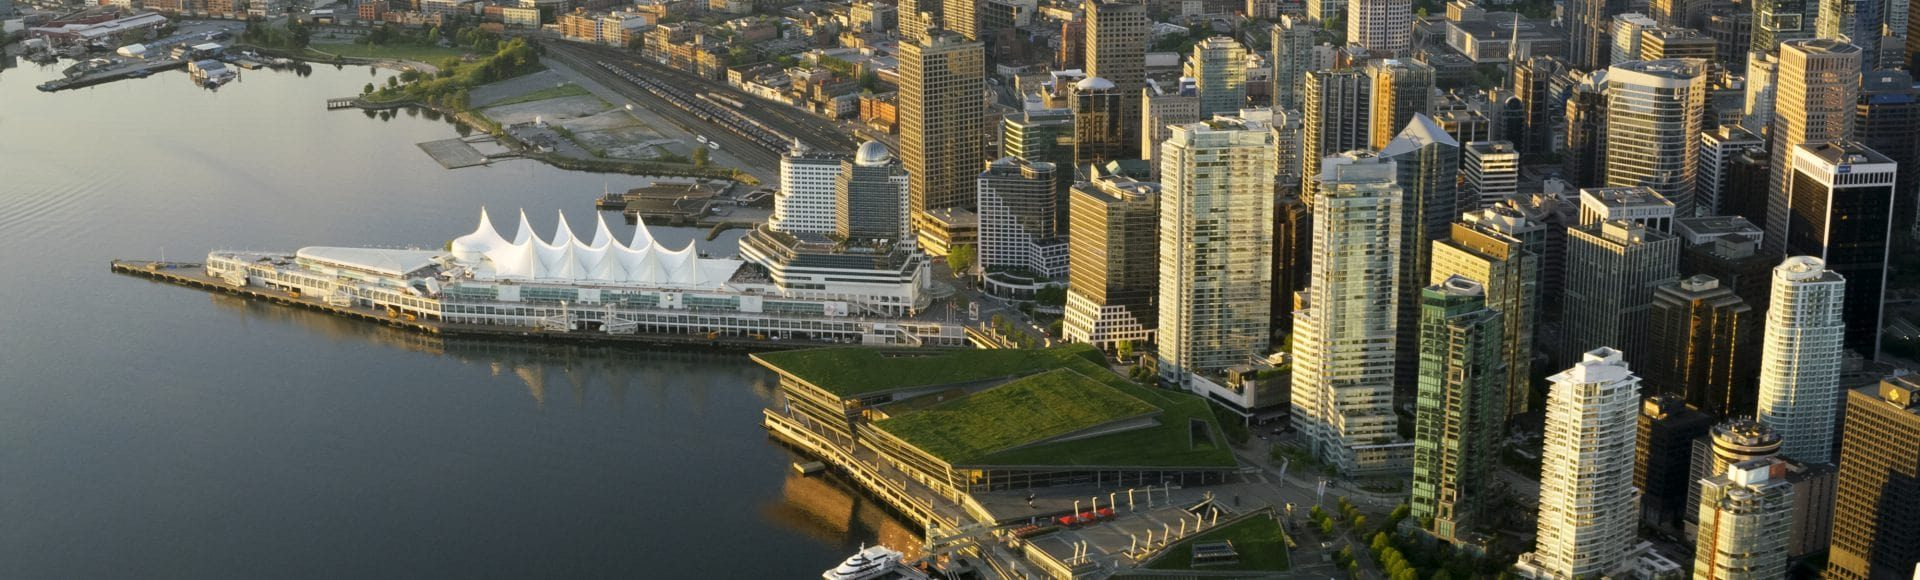 vancouver-convention-center_hero